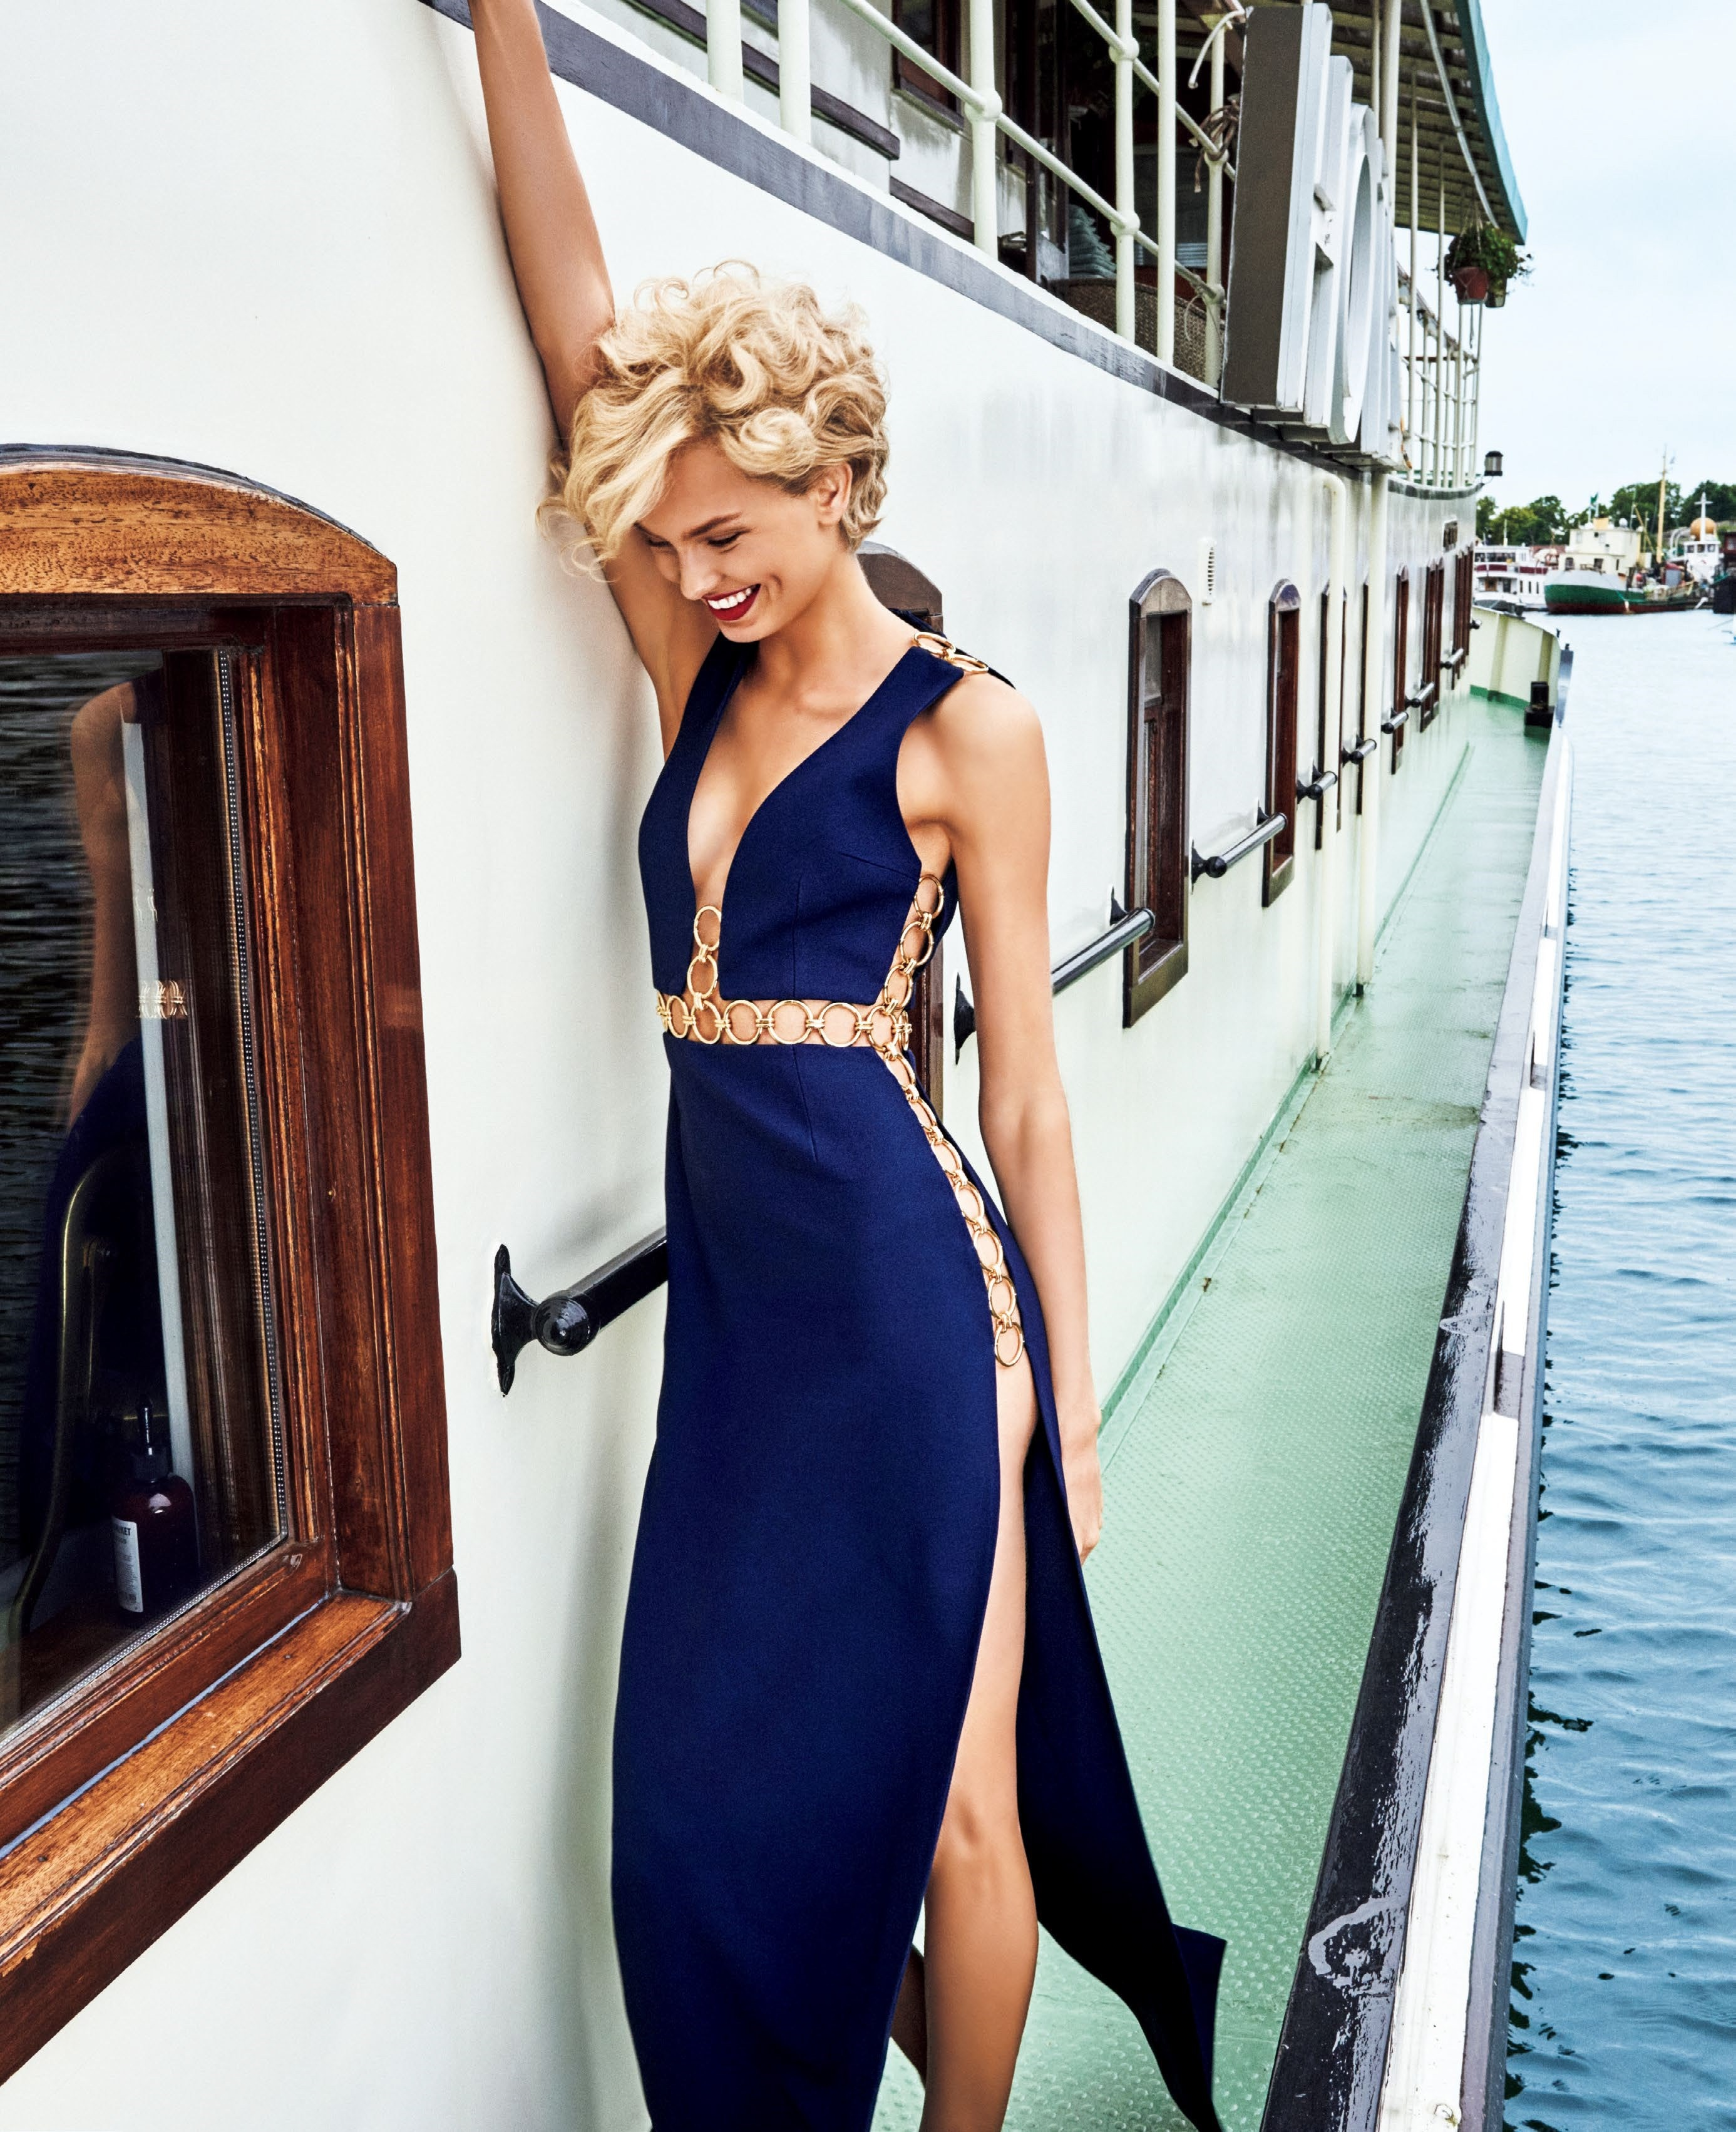 Vogue Japan Romee Strijd By Mariano Vivanco Image Amplified